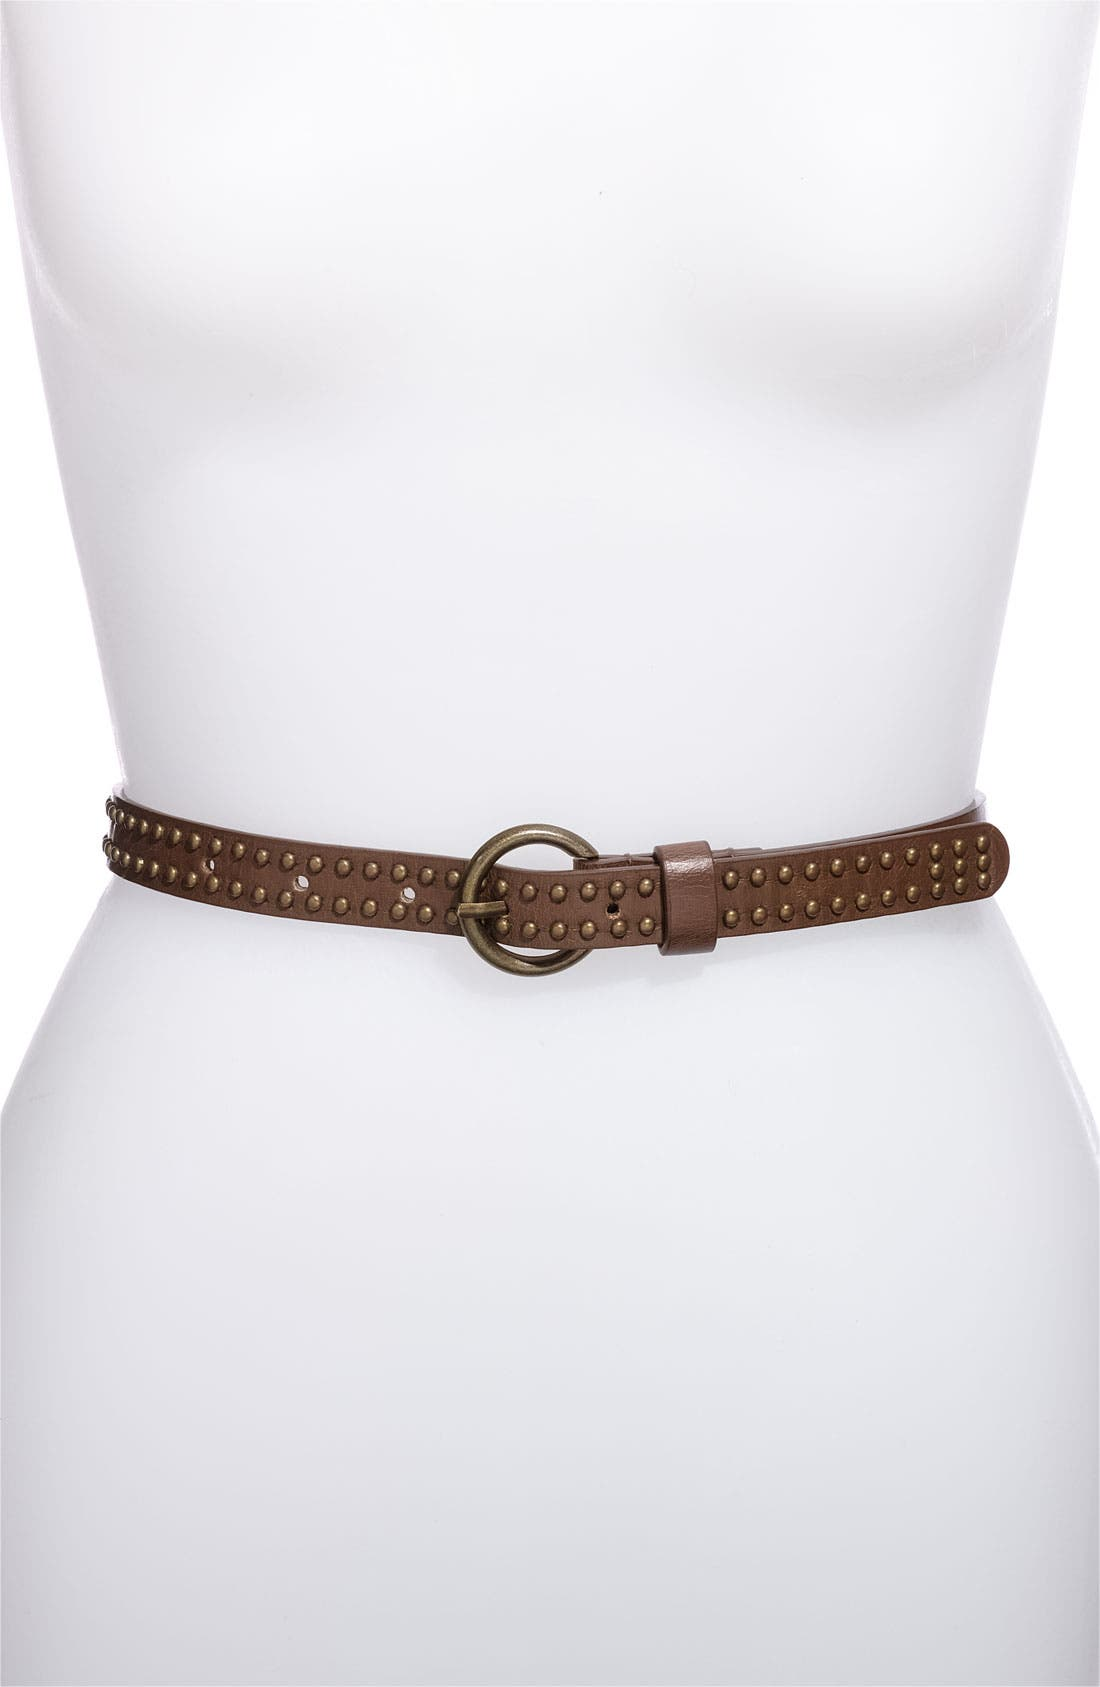 Alternate Image 3  - Lulu Studded Faux Leather & Stretch Rope Belts (2-Pack)